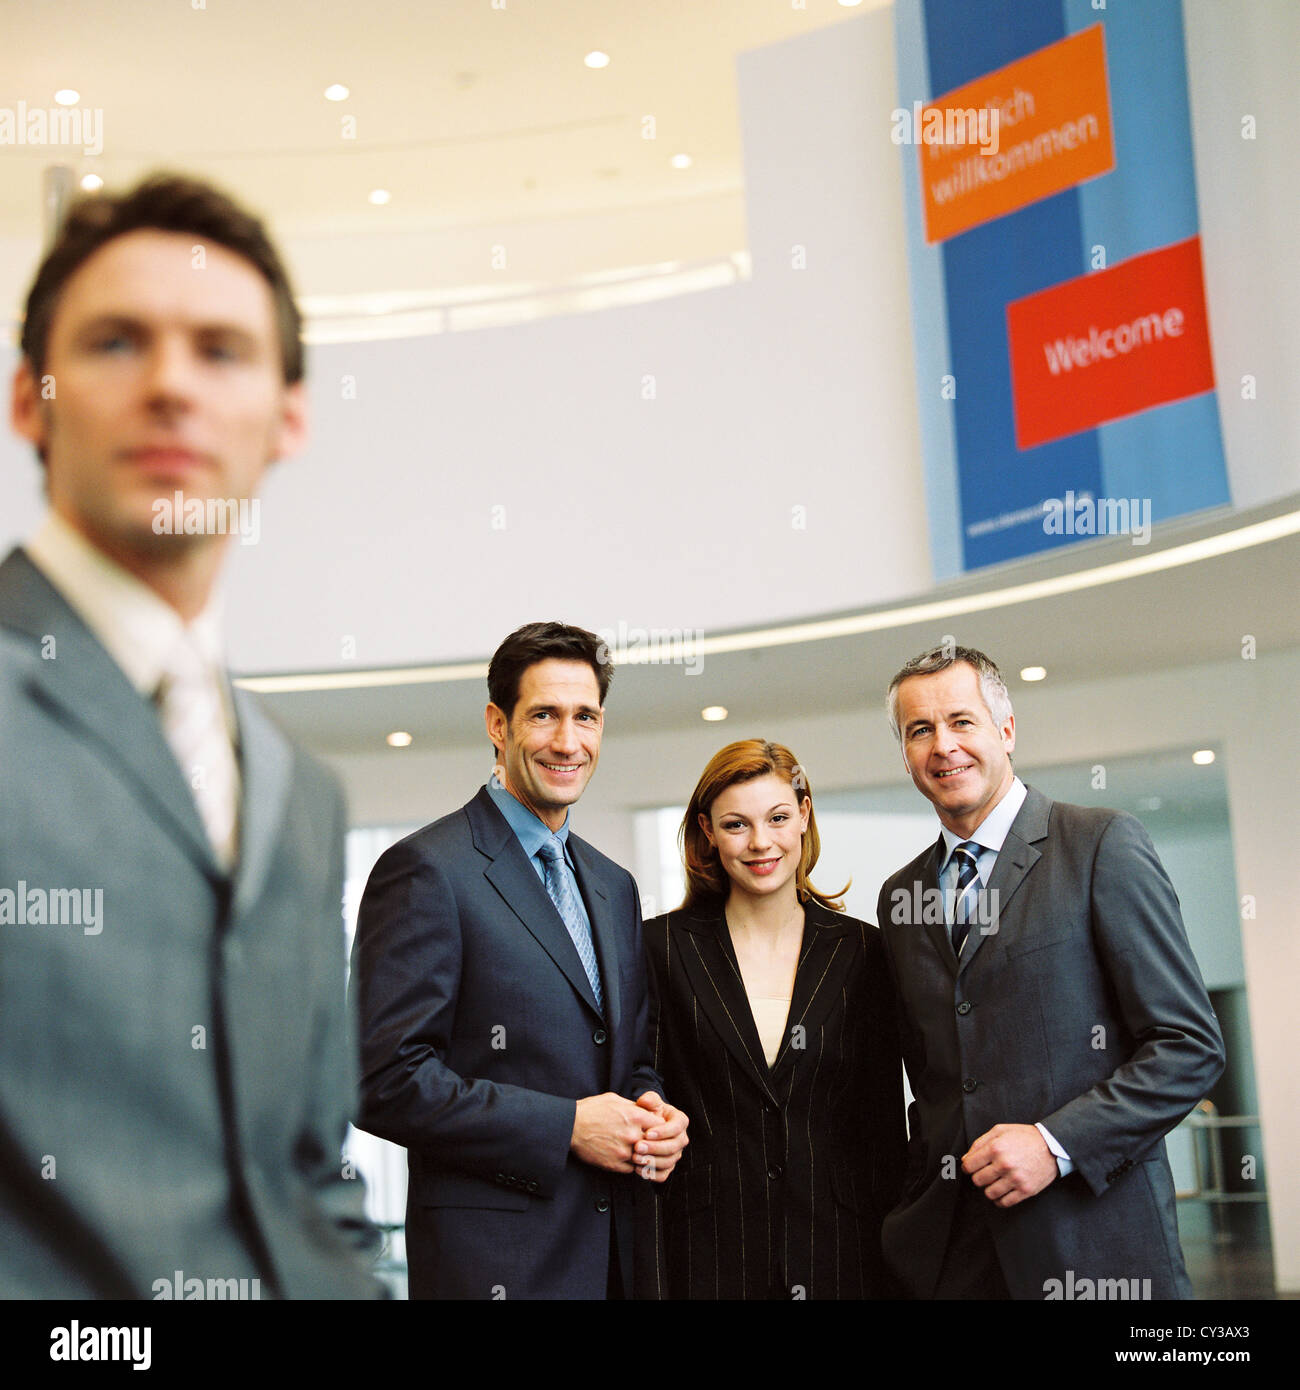 business people manager team License free except ads and outdoor billboards - Stock Image